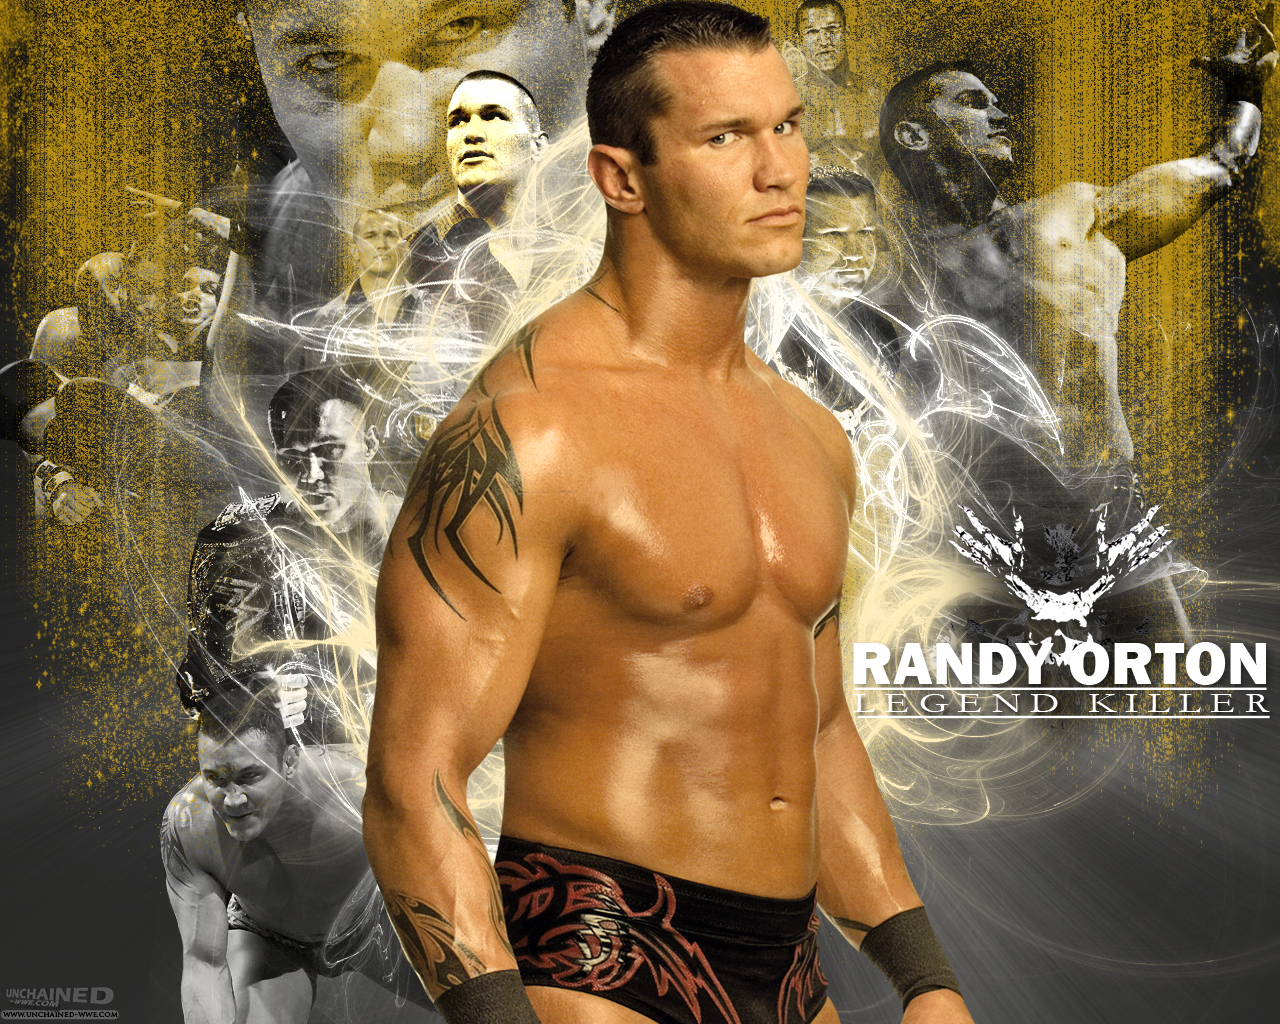 WWE Smackdown Raw Wallpapers Wwe Randy Orton Wallpapers 1280x1024